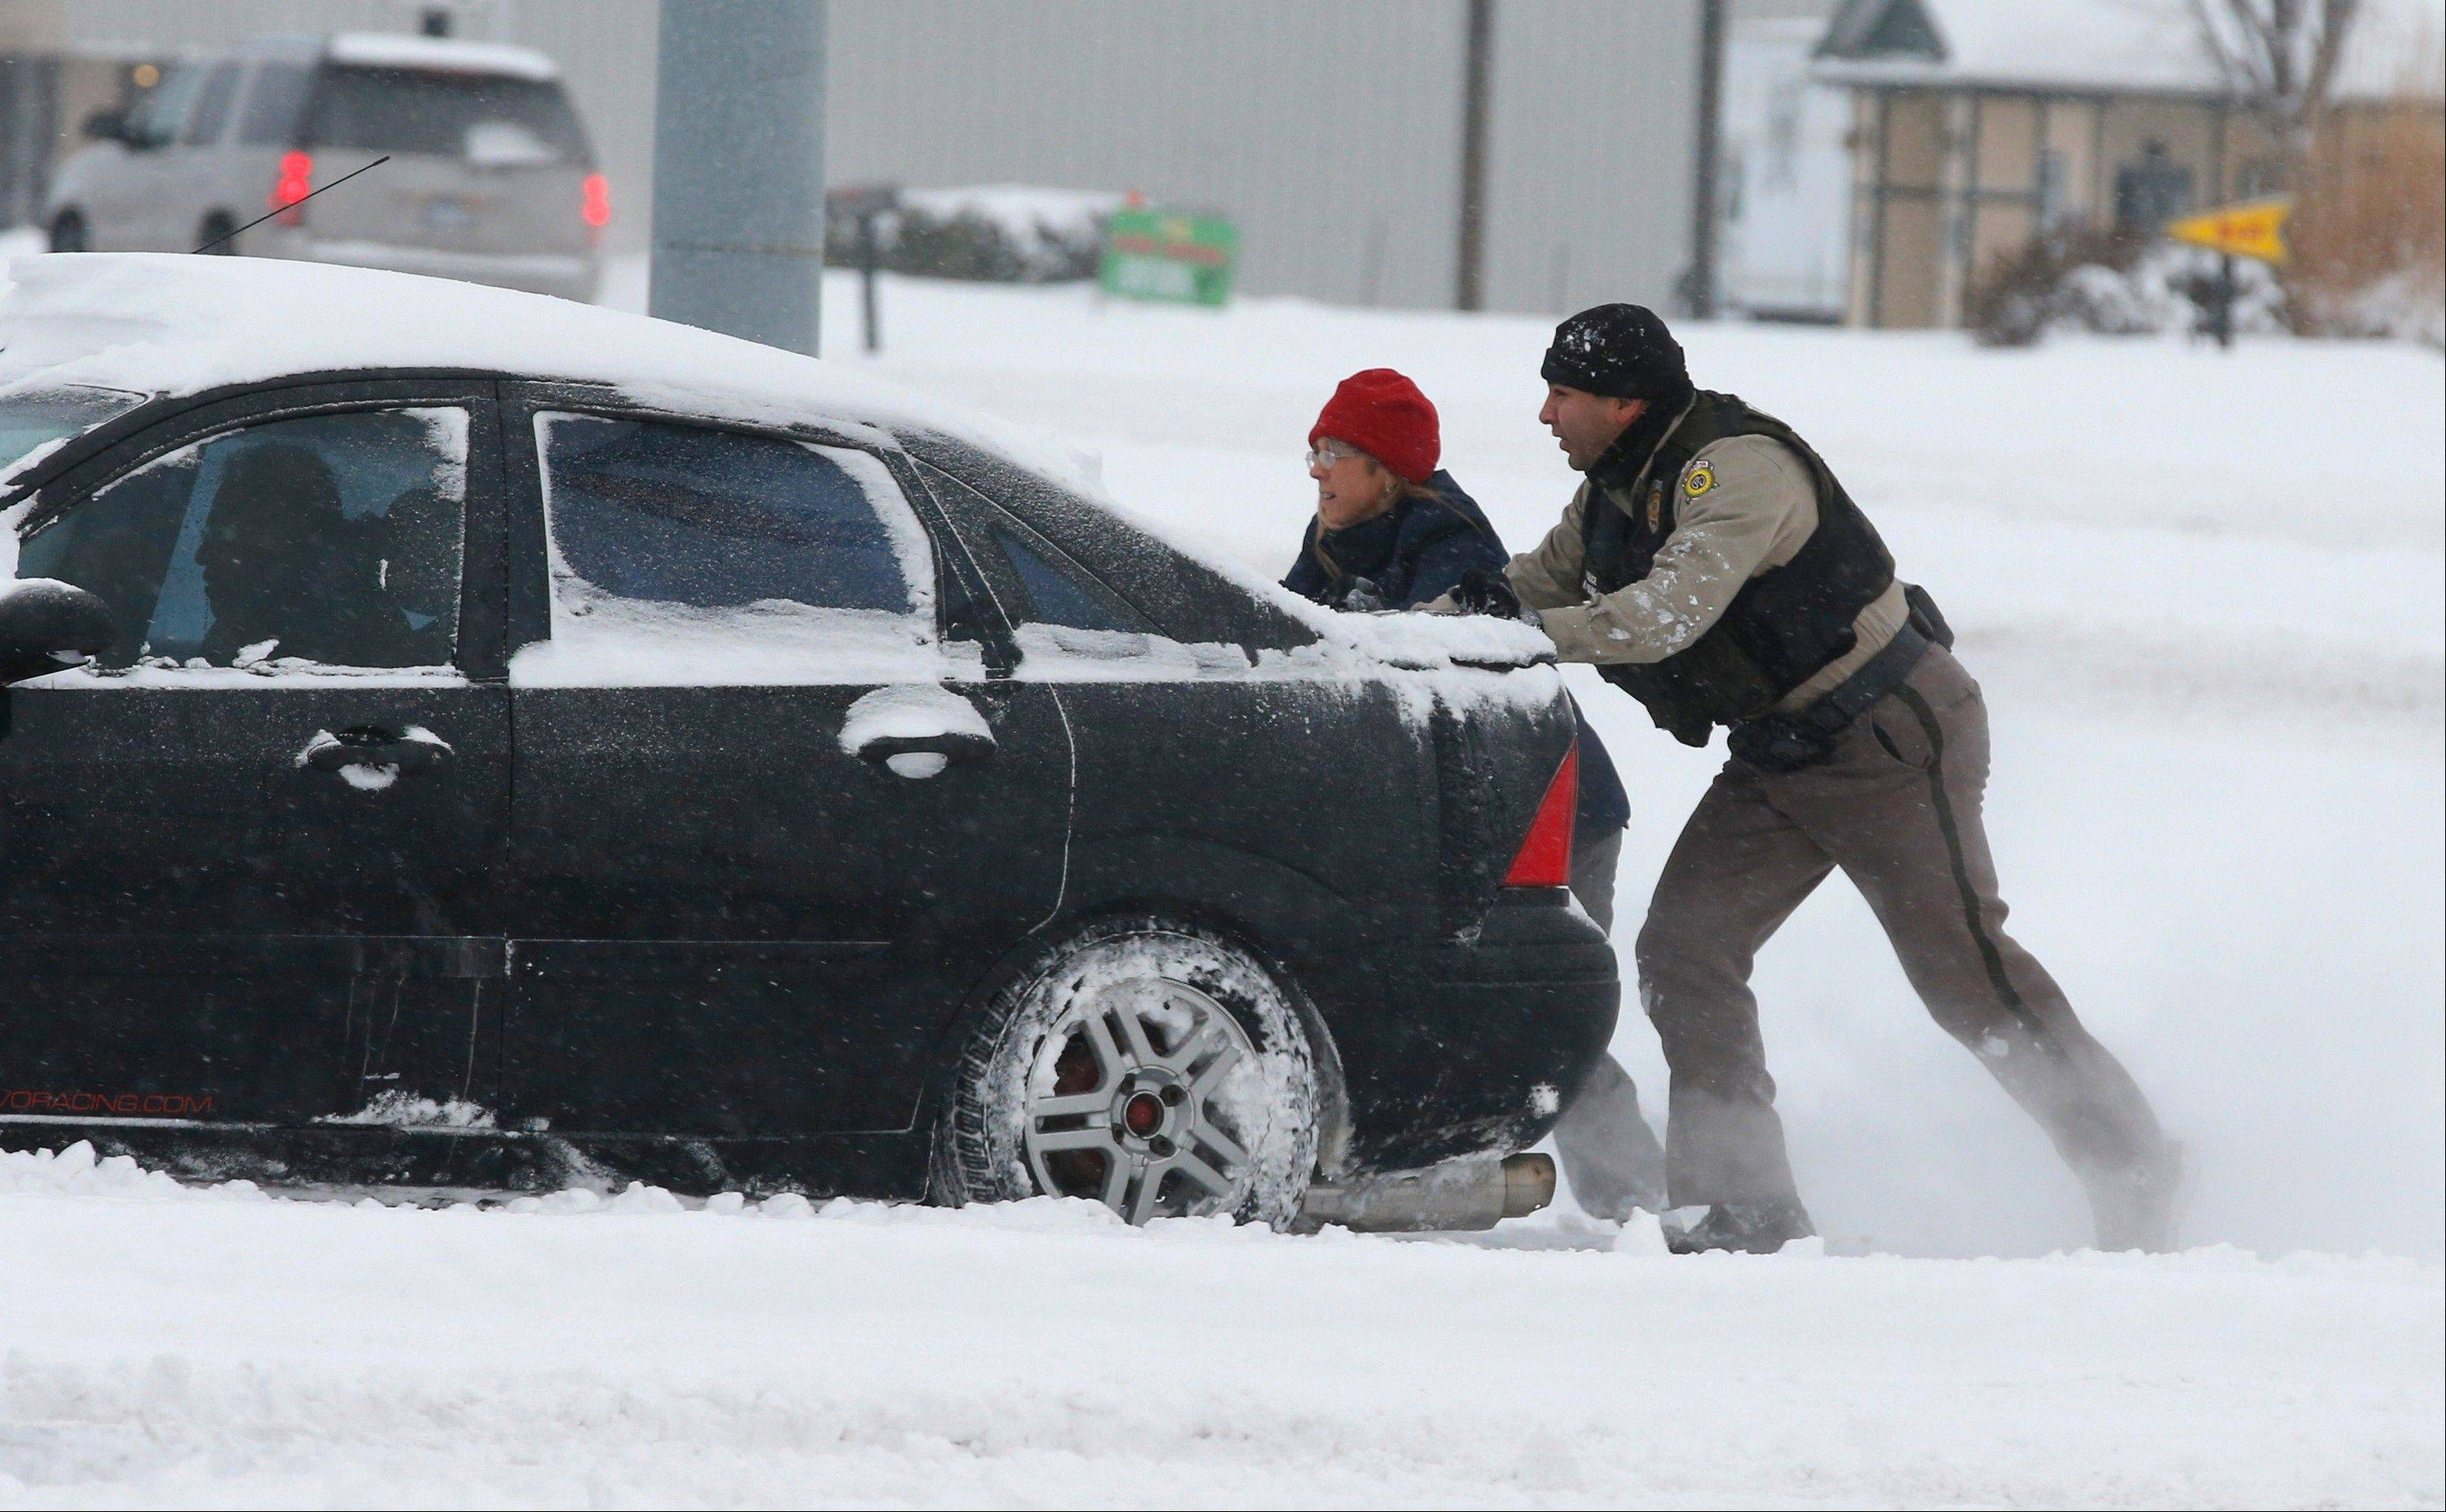 A Sedgwick County Sheriff's deputy helps a stranded motorist in Wichita, Kans. Thursday, Feb 21, 2013, as nearly a foot of snow covered the area. Kansas was the epicenter of the winter storm, with parts of Wichita buried under 13 inches of still-falling snow, but winter storm warnings stretched eastern Colorado through Illinois.